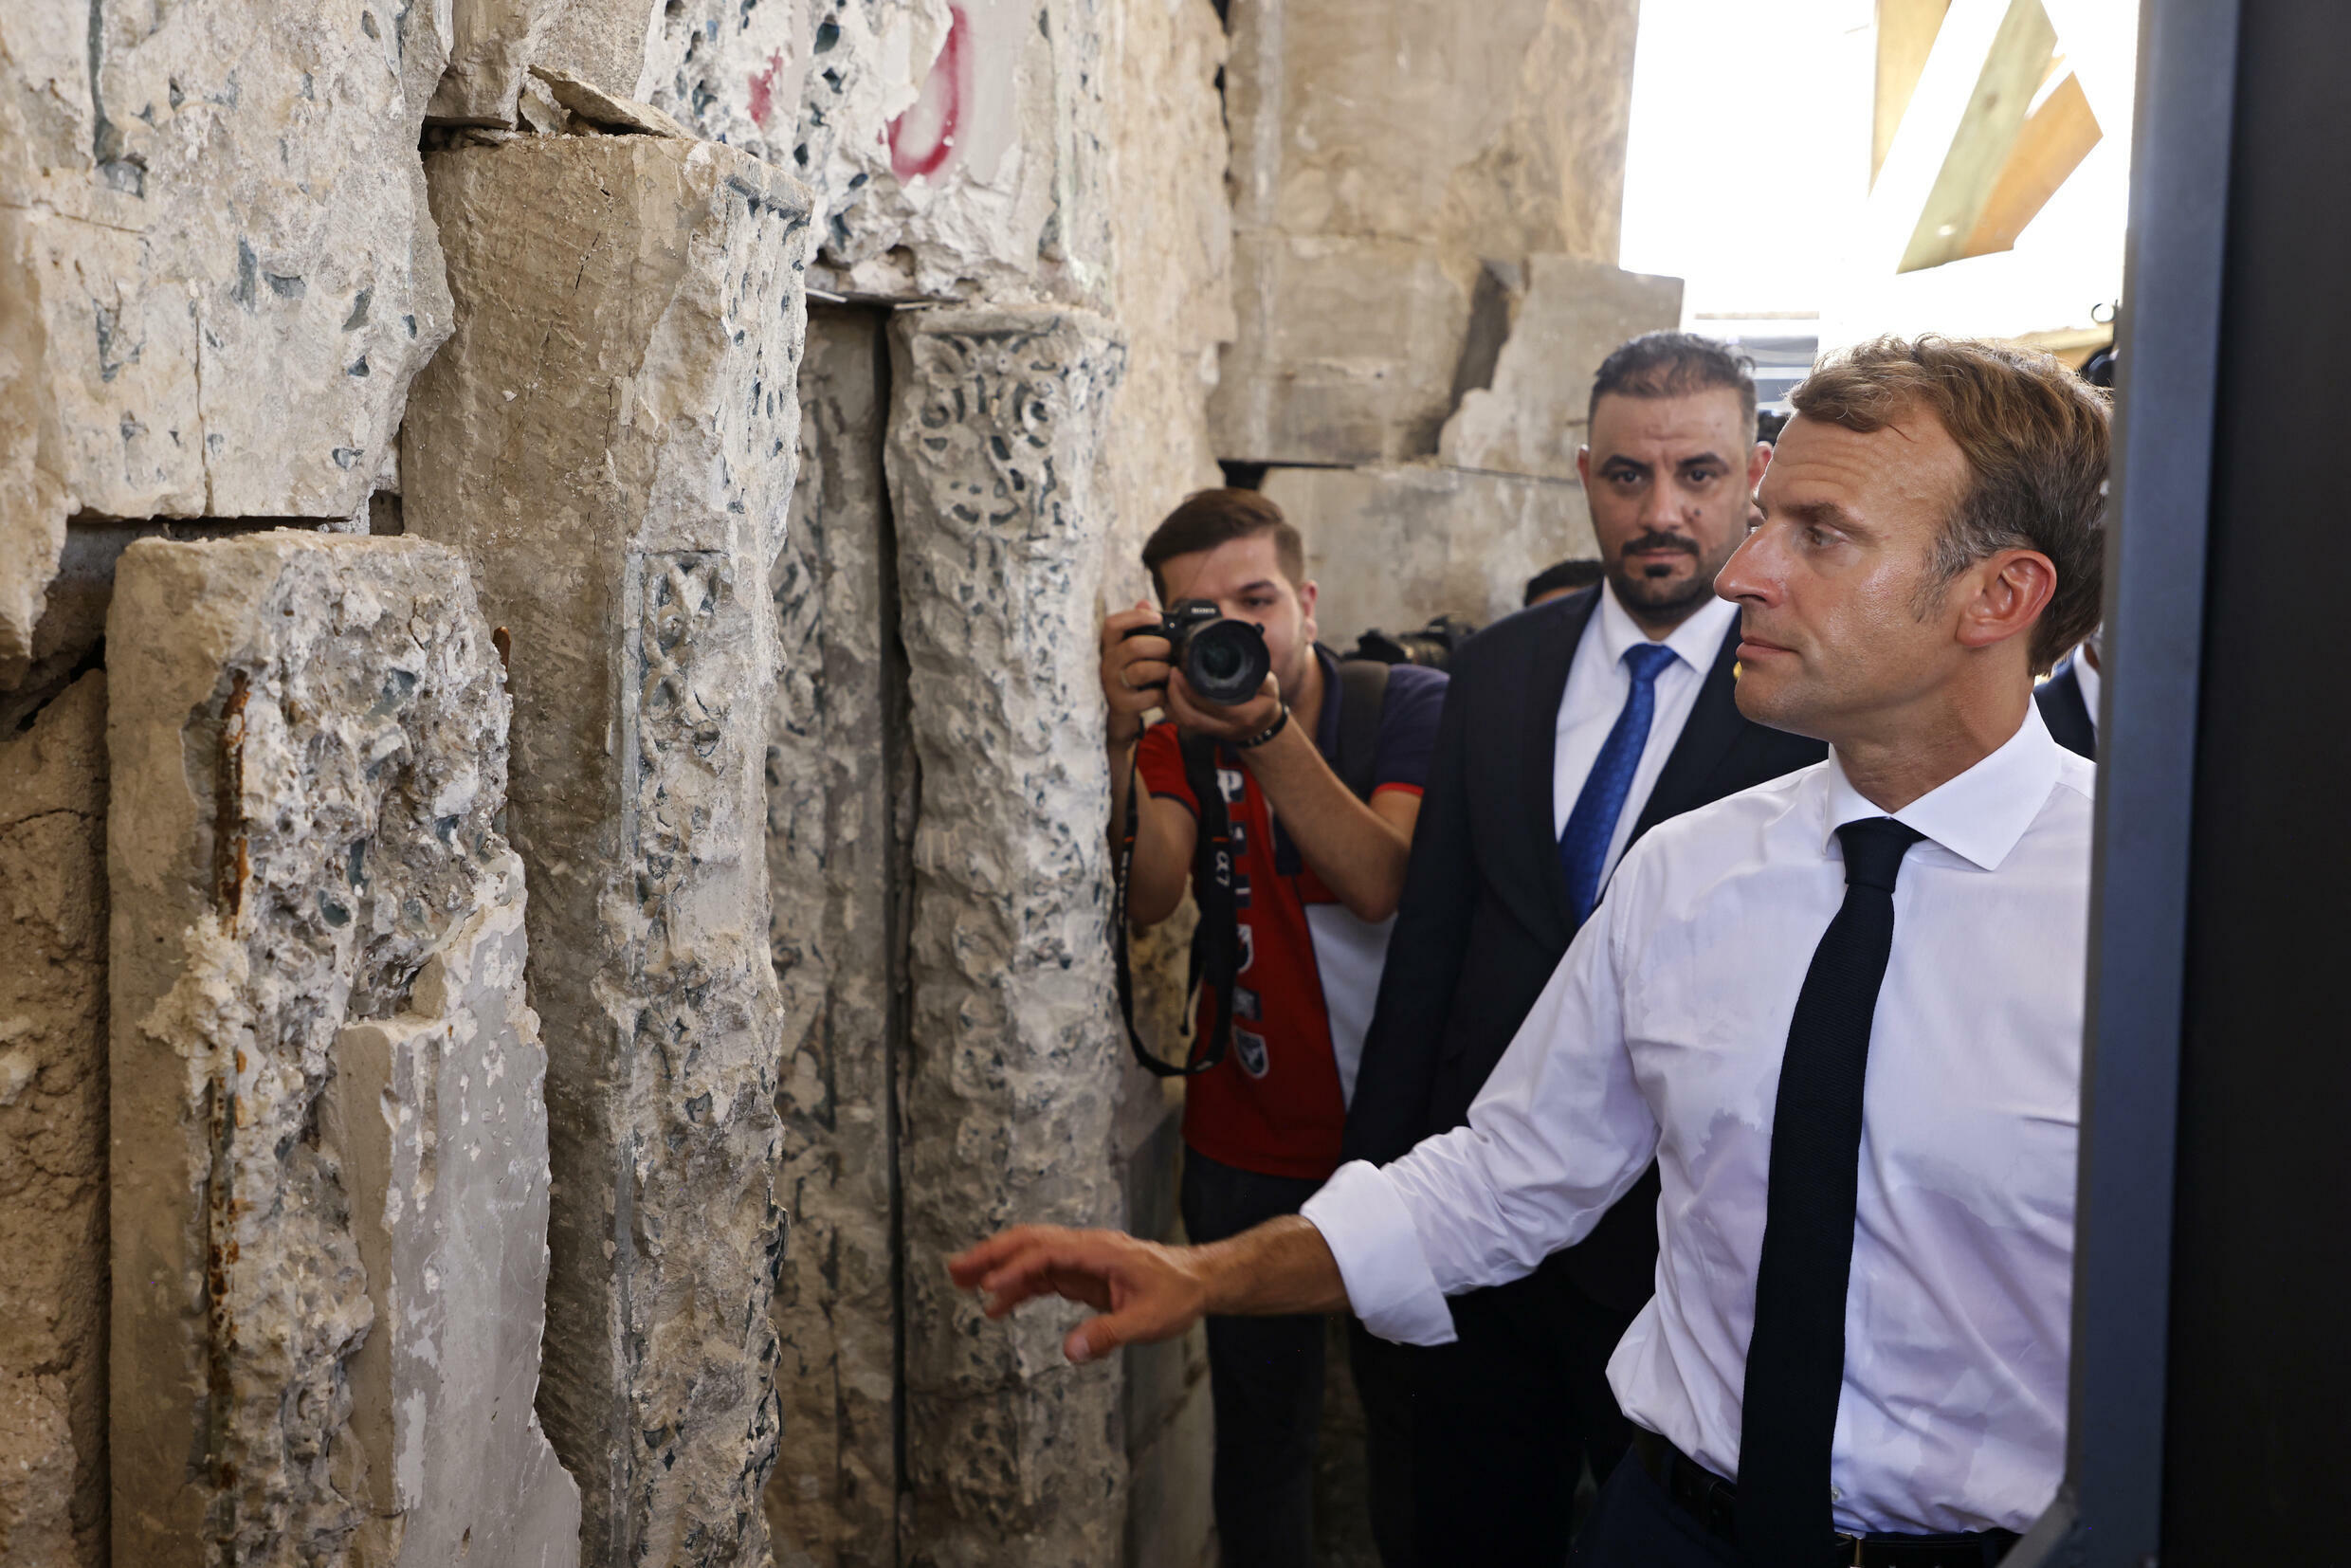 French President Emmanuel Macron visits the Al-Nuri Mosque in Mosul on August 29, 2021